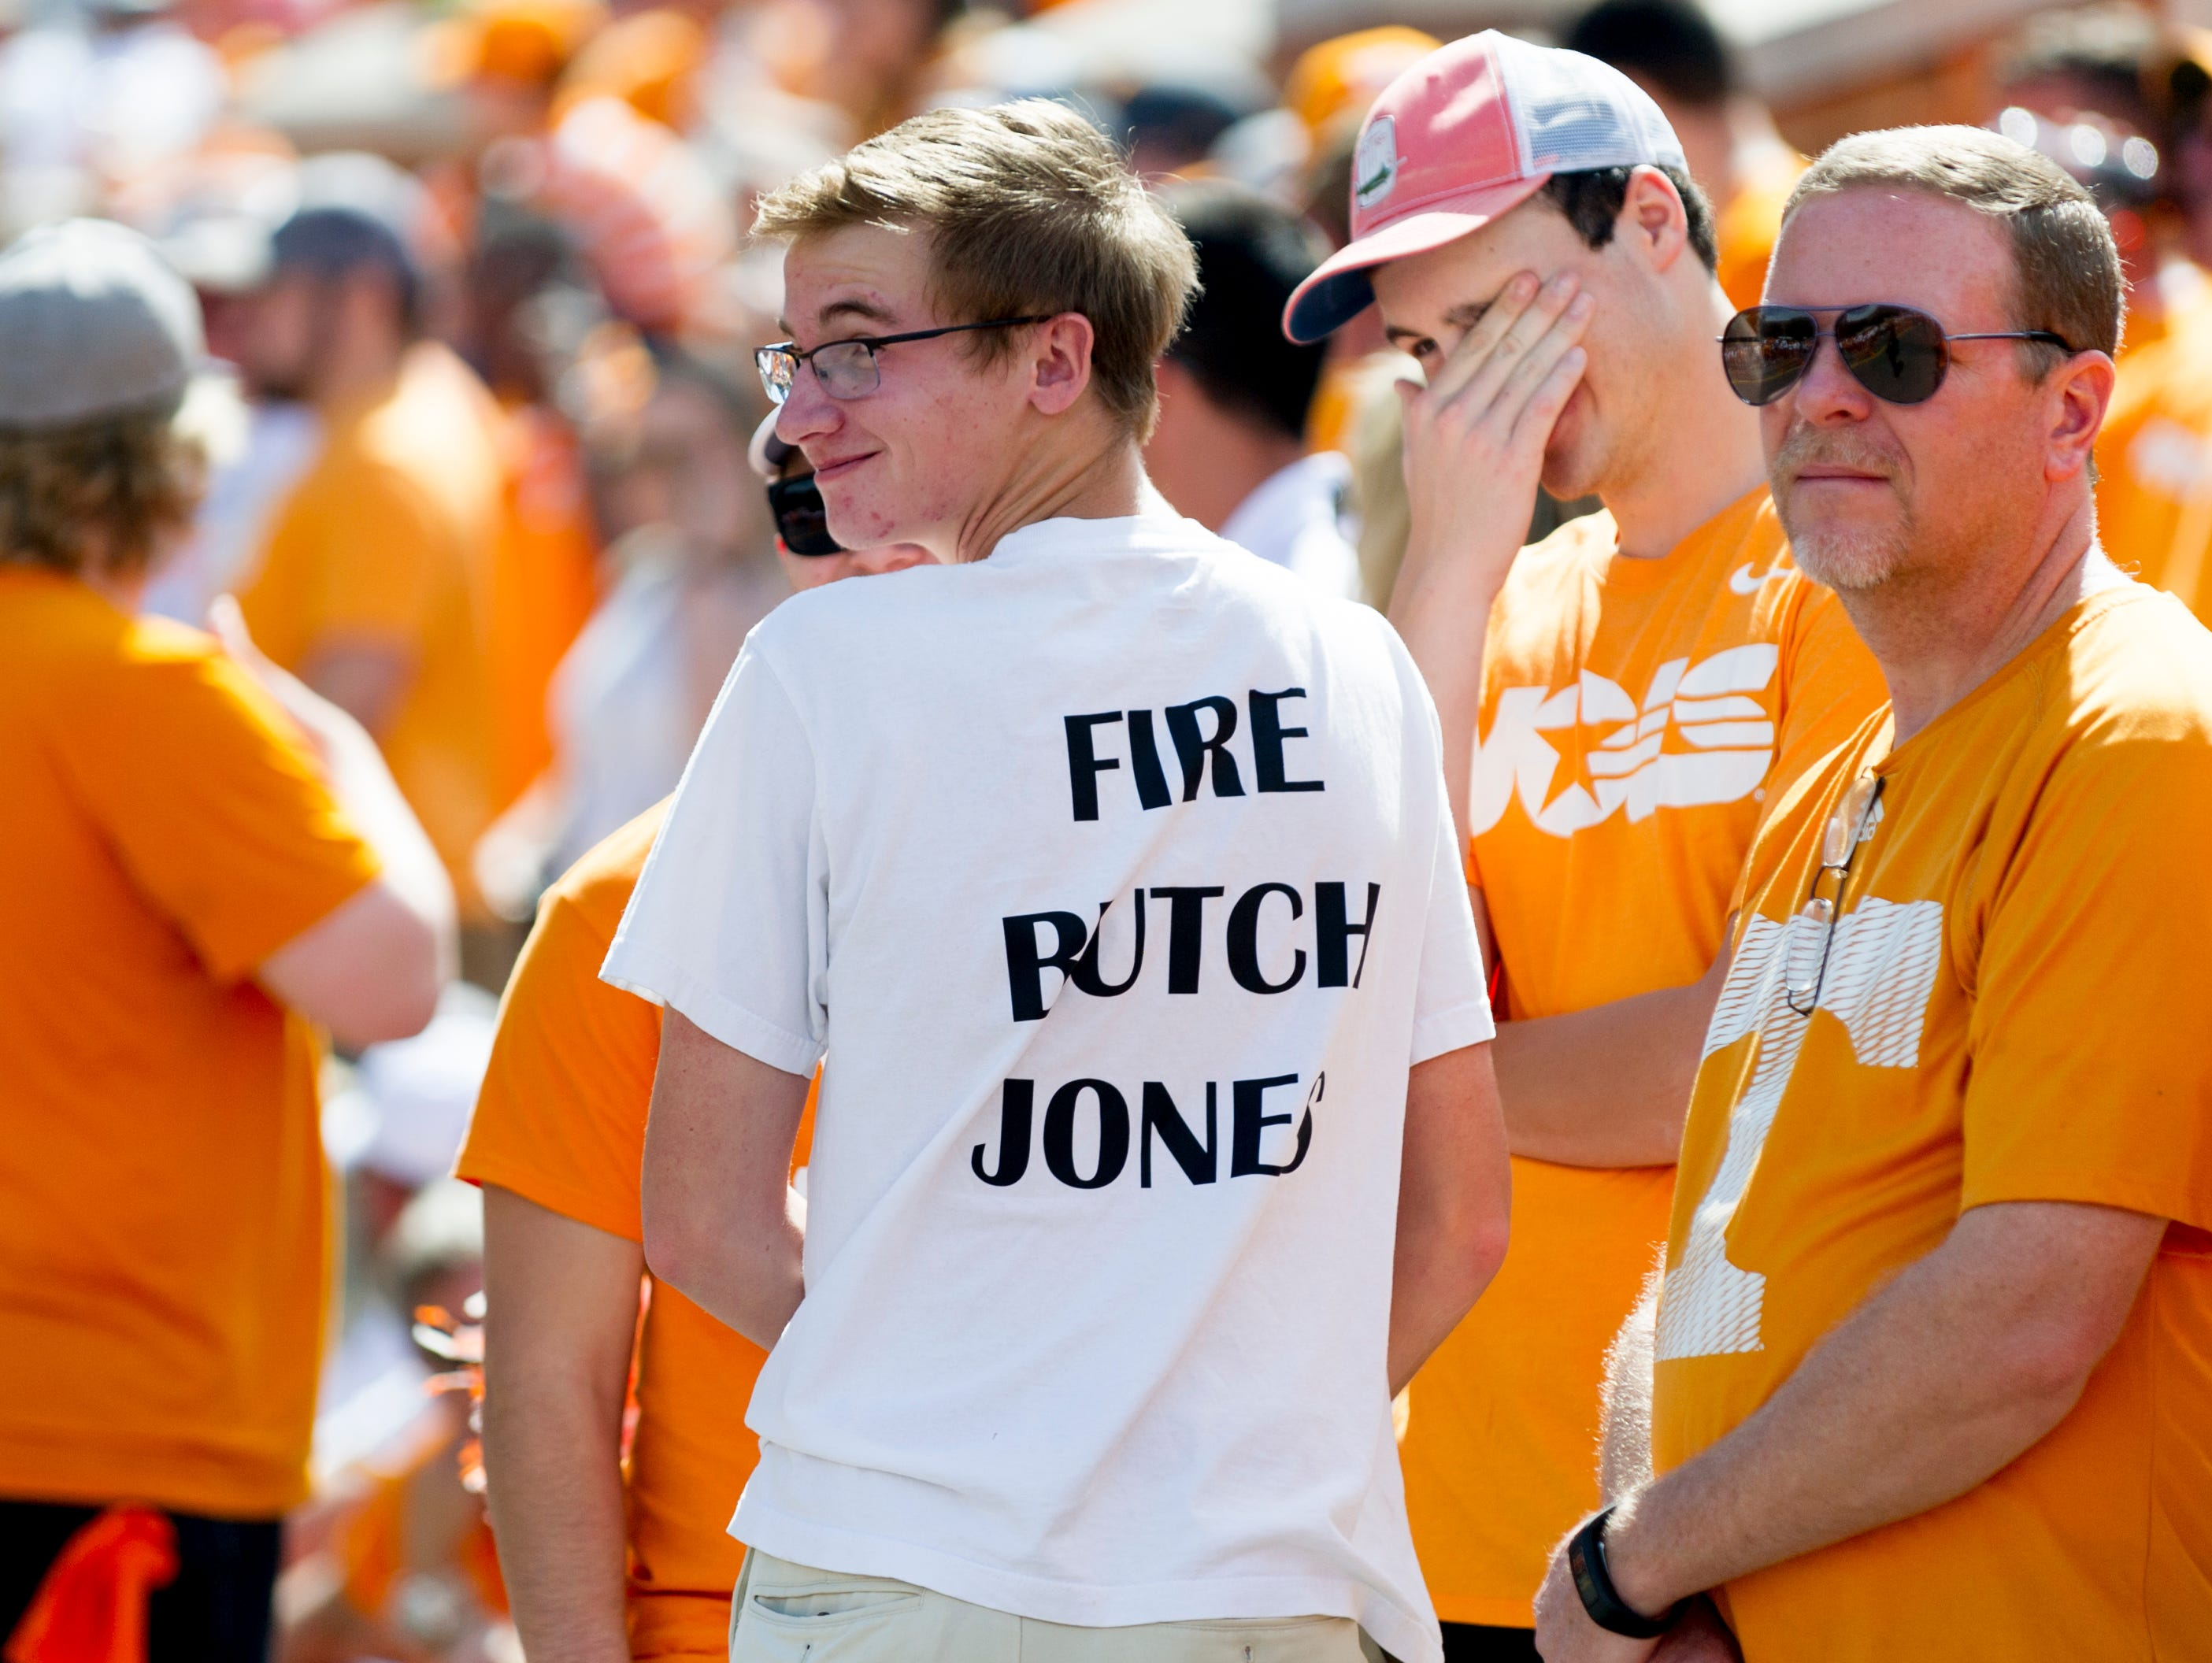 """A fan wears a """"Fire Butch Jones"""" t-shirt during the Tennessee Volunteers vs. Georgia Bulldogs game at Neyland Stadium in Knoxville, Tennessee on Saturday, September 30, 2017."""